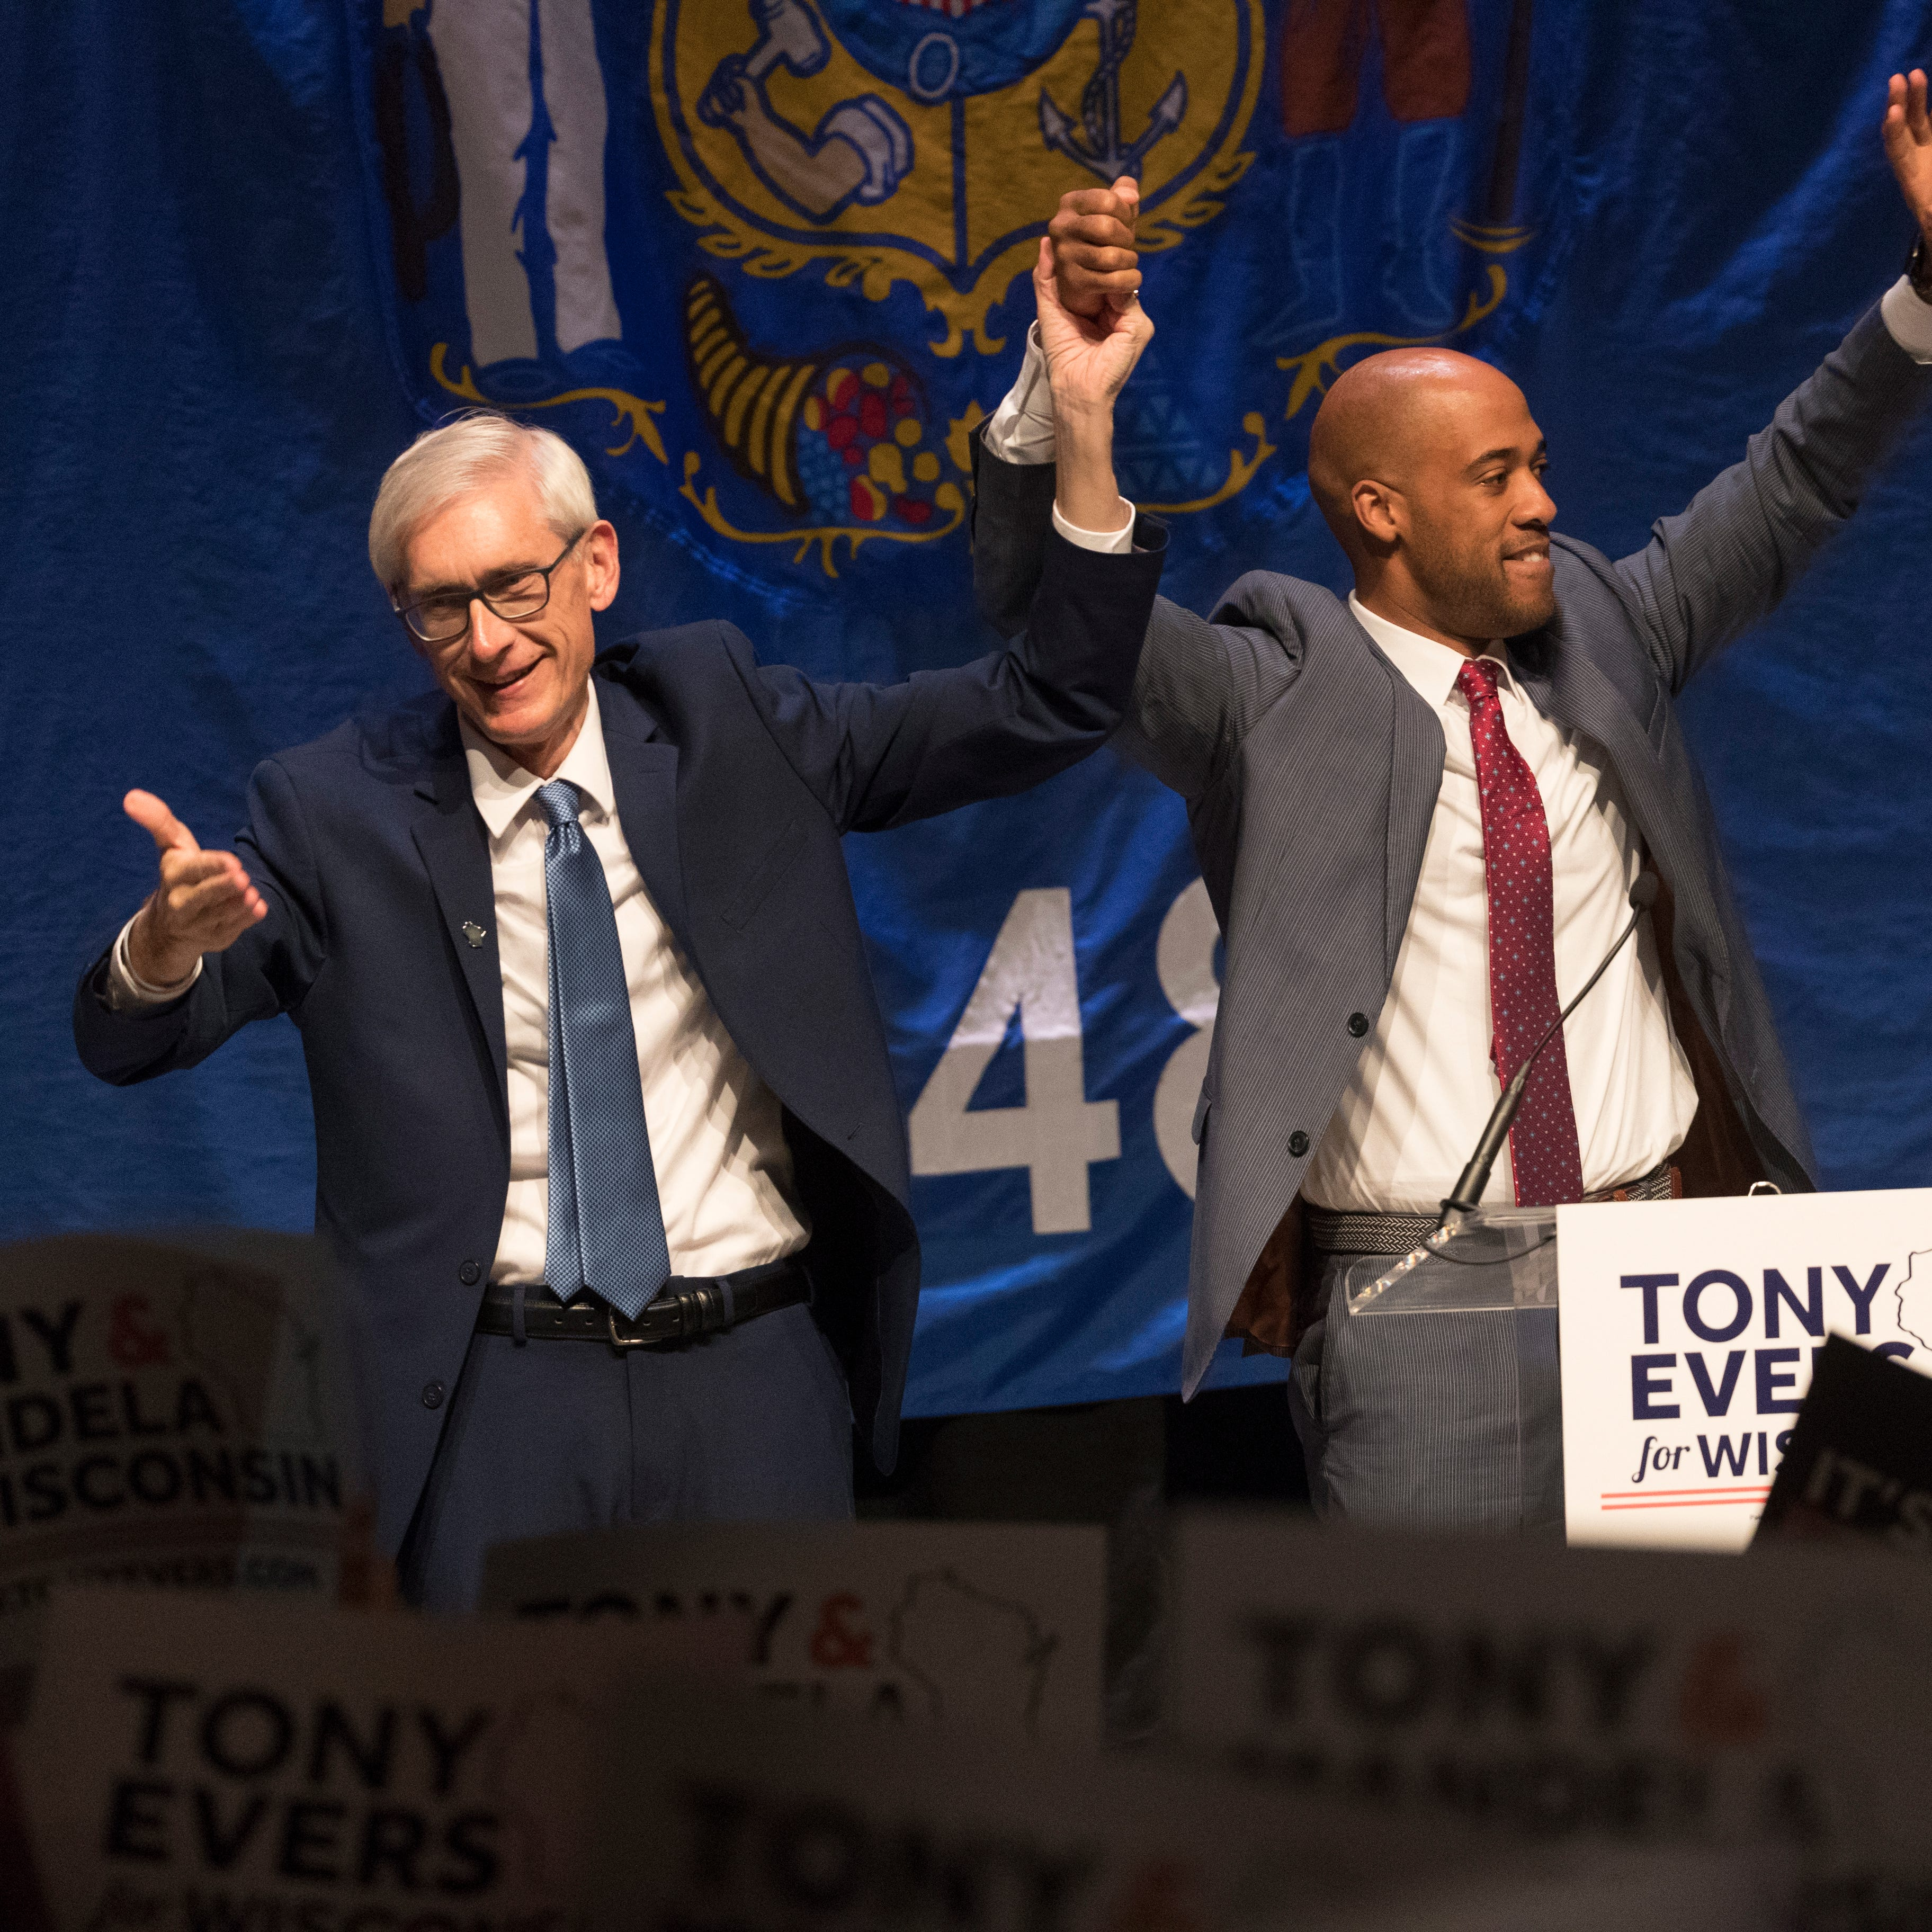 Timing, Trump and turning down the volume: How low-key Tony Evers defeated Scott Walker